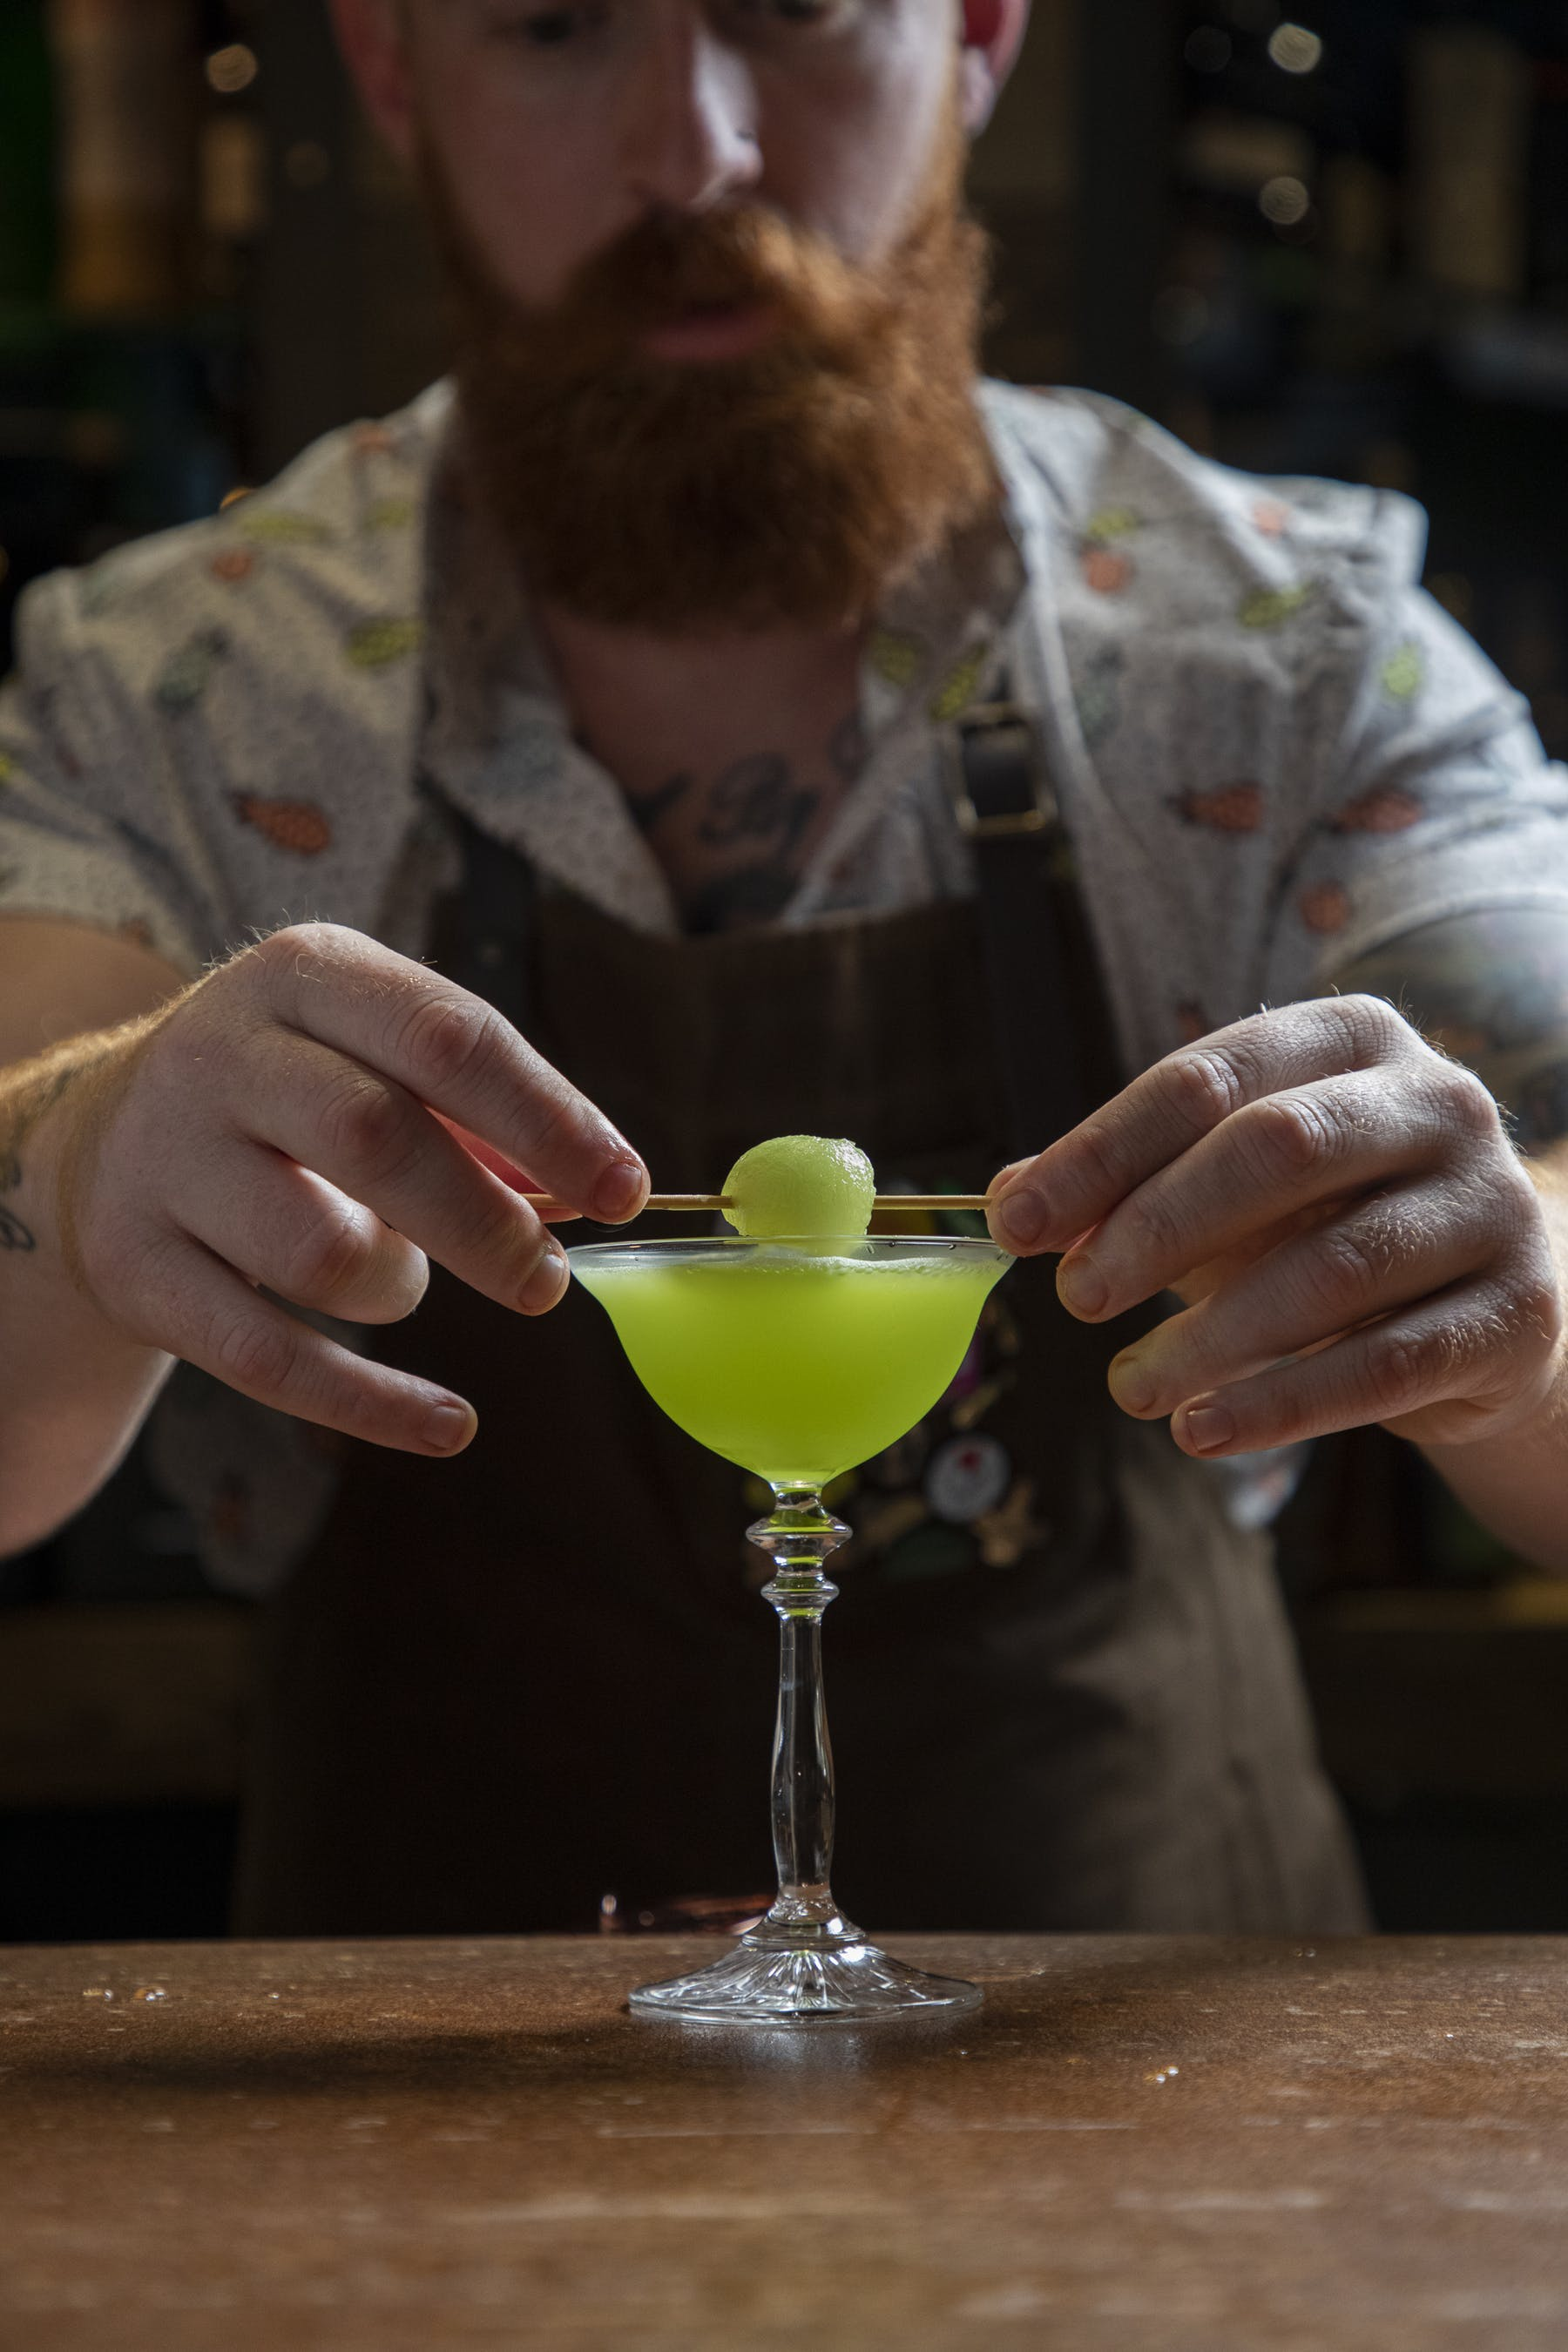 a man preparing a cocktail drink